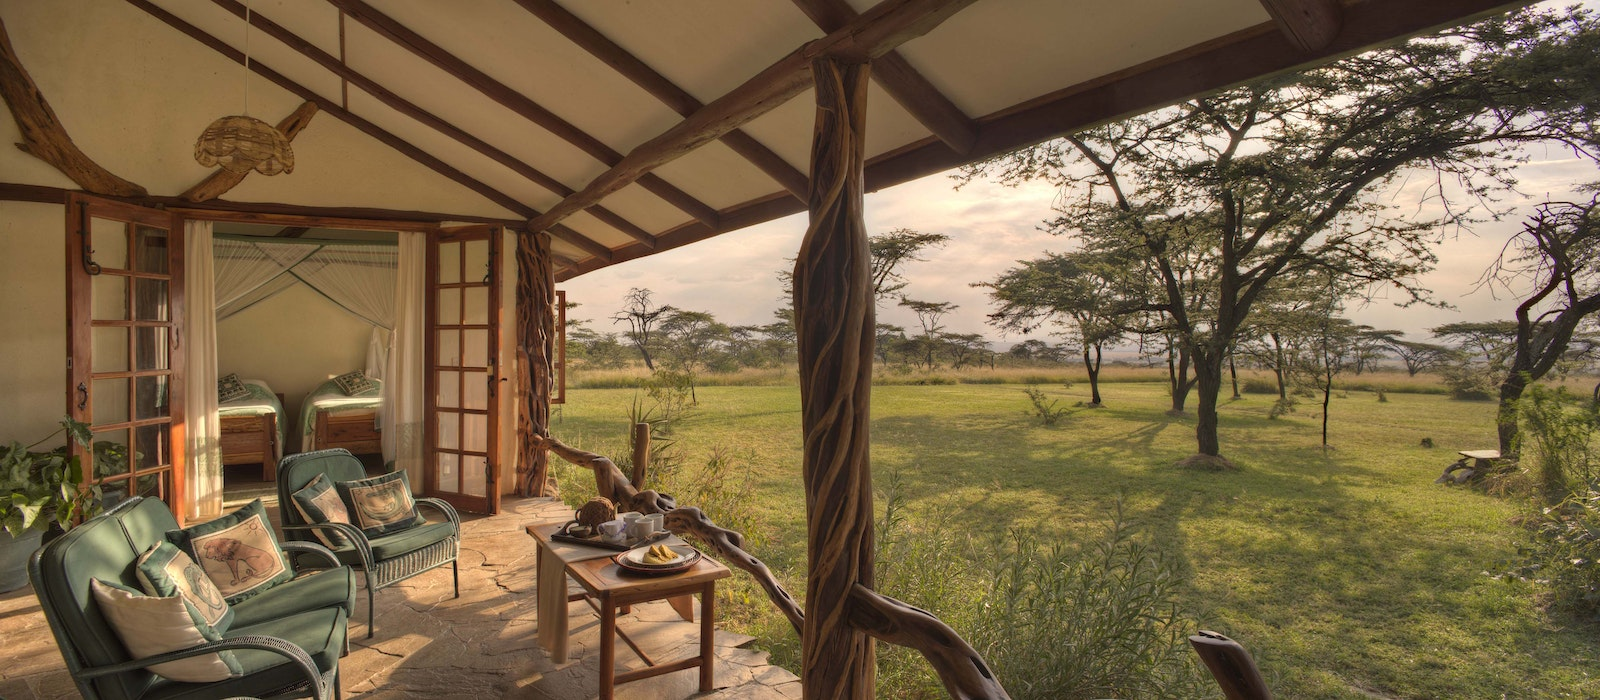 Make the Topi House your family's base camp in Kenya's Maasai Mara with Asilia Africa.